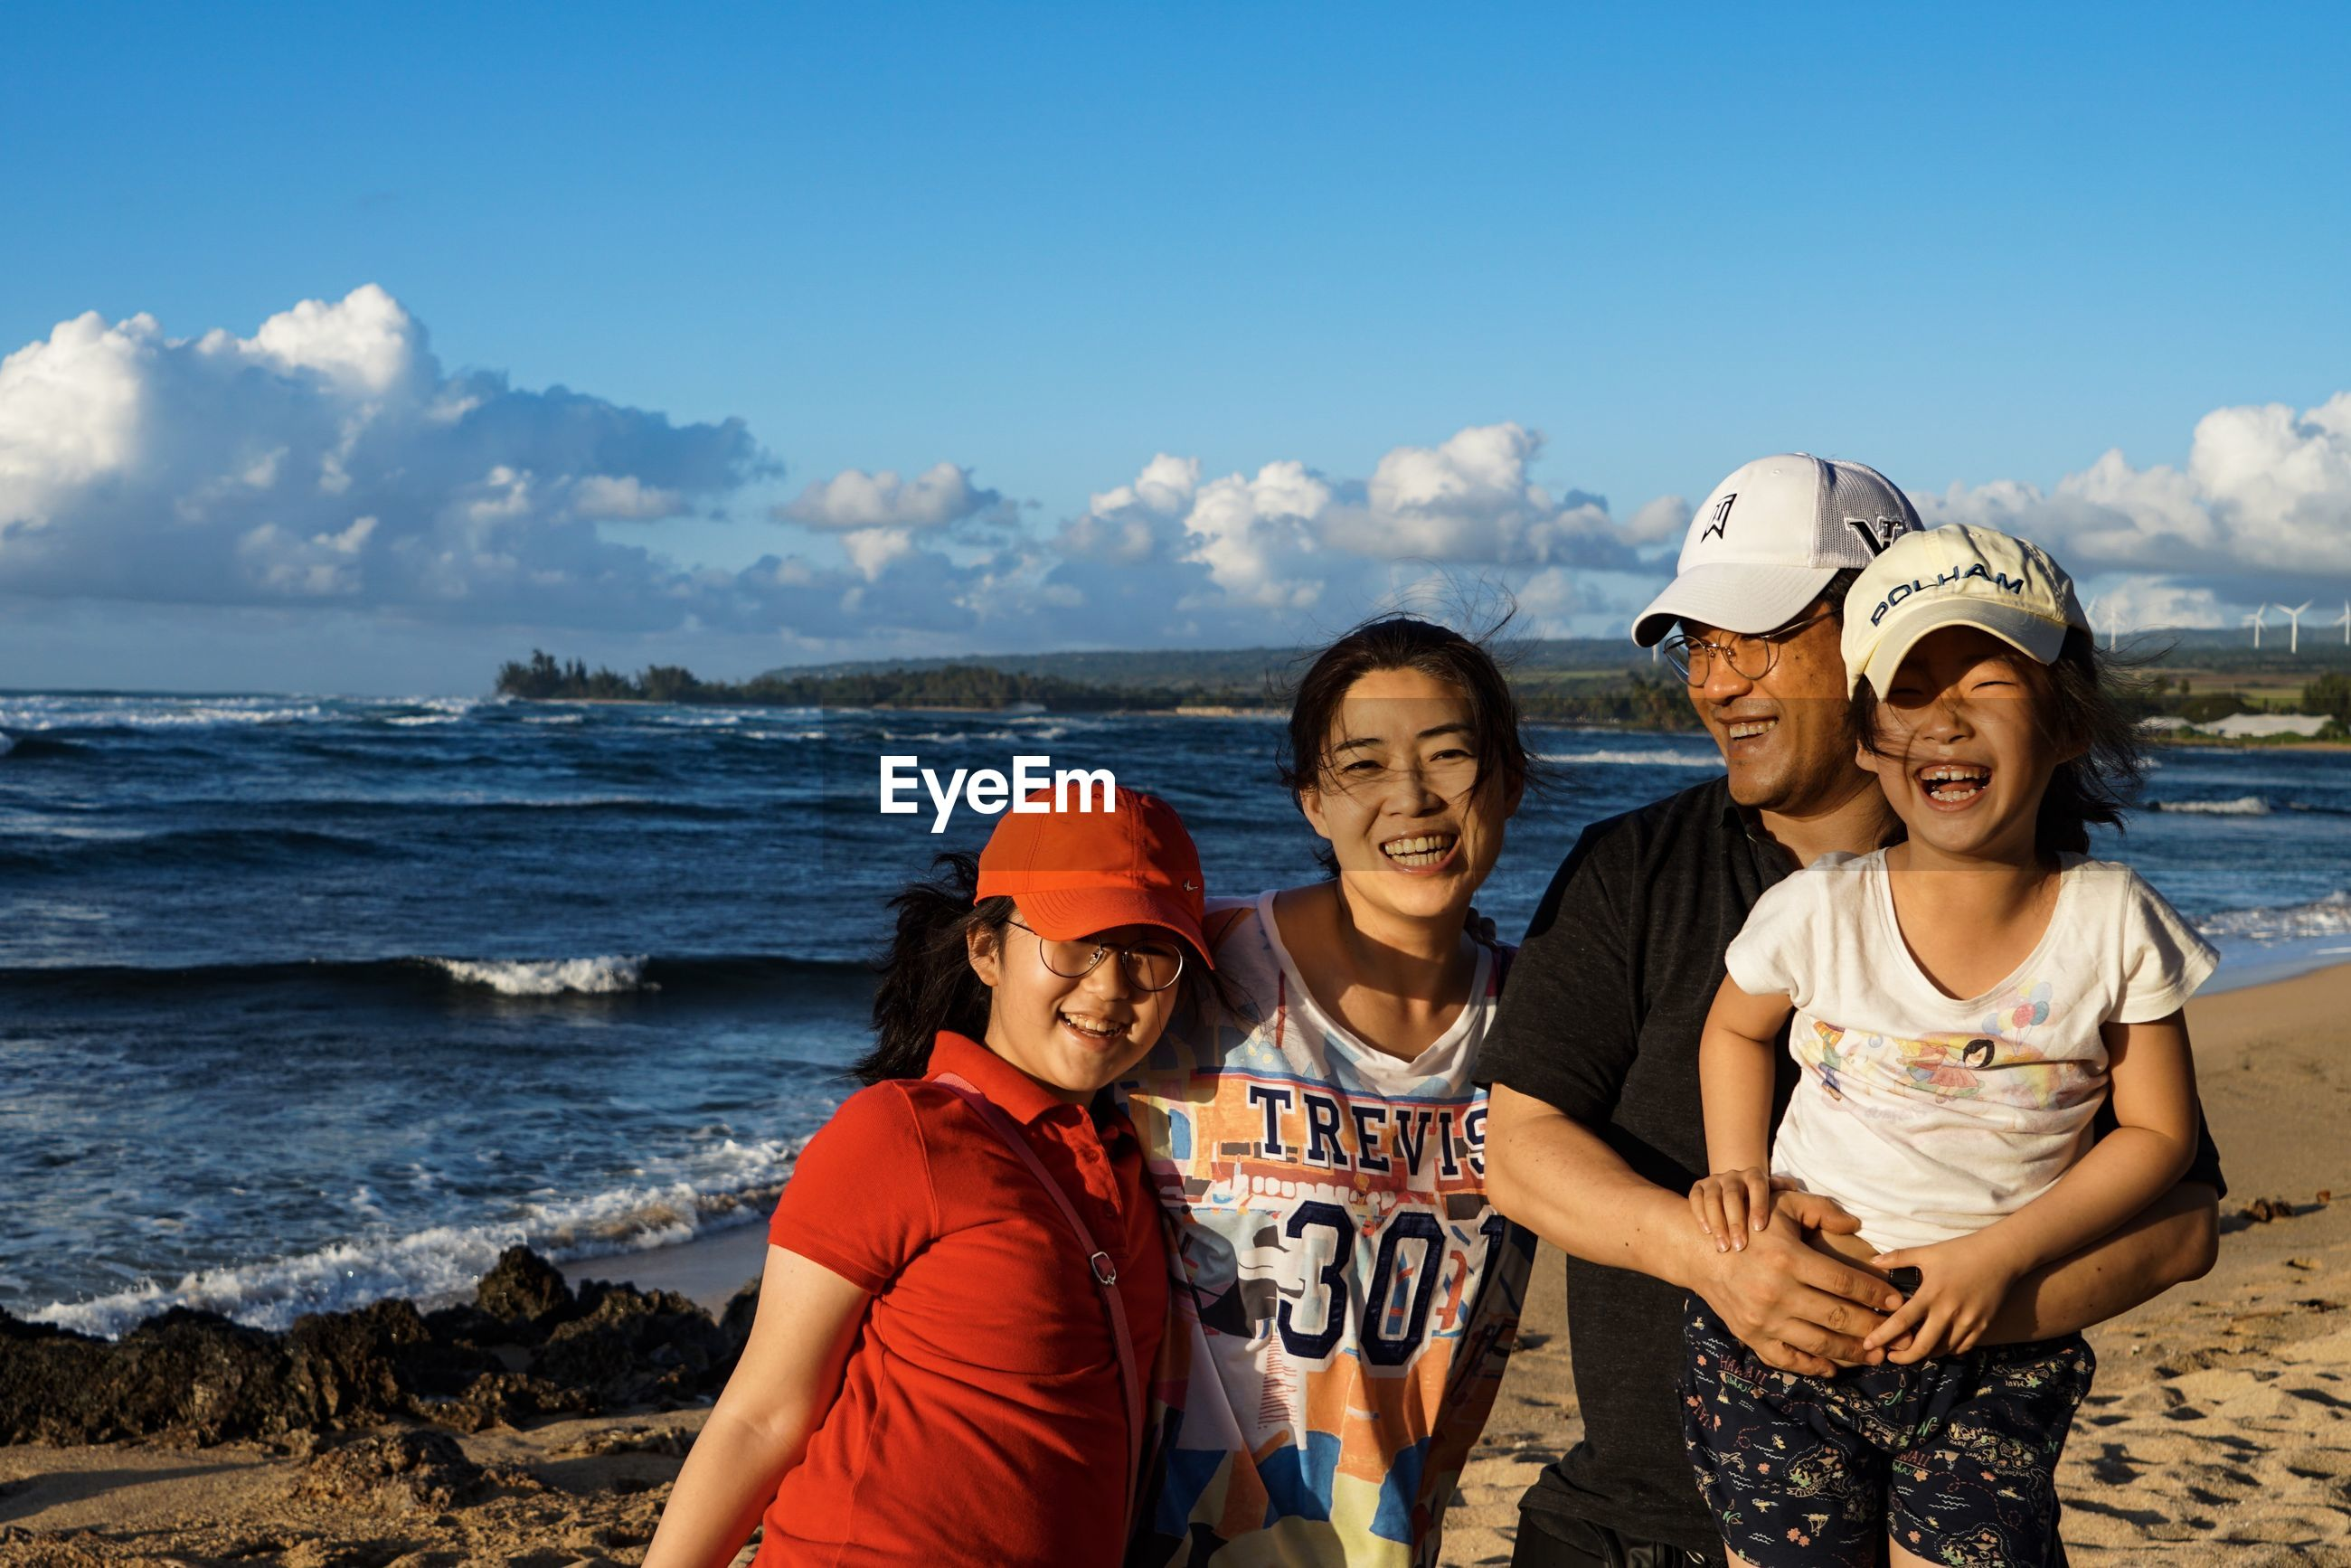 PORTRAIT OF SMILING FRIENDS ON BEACH AGAINST SEA AGAINST SKY